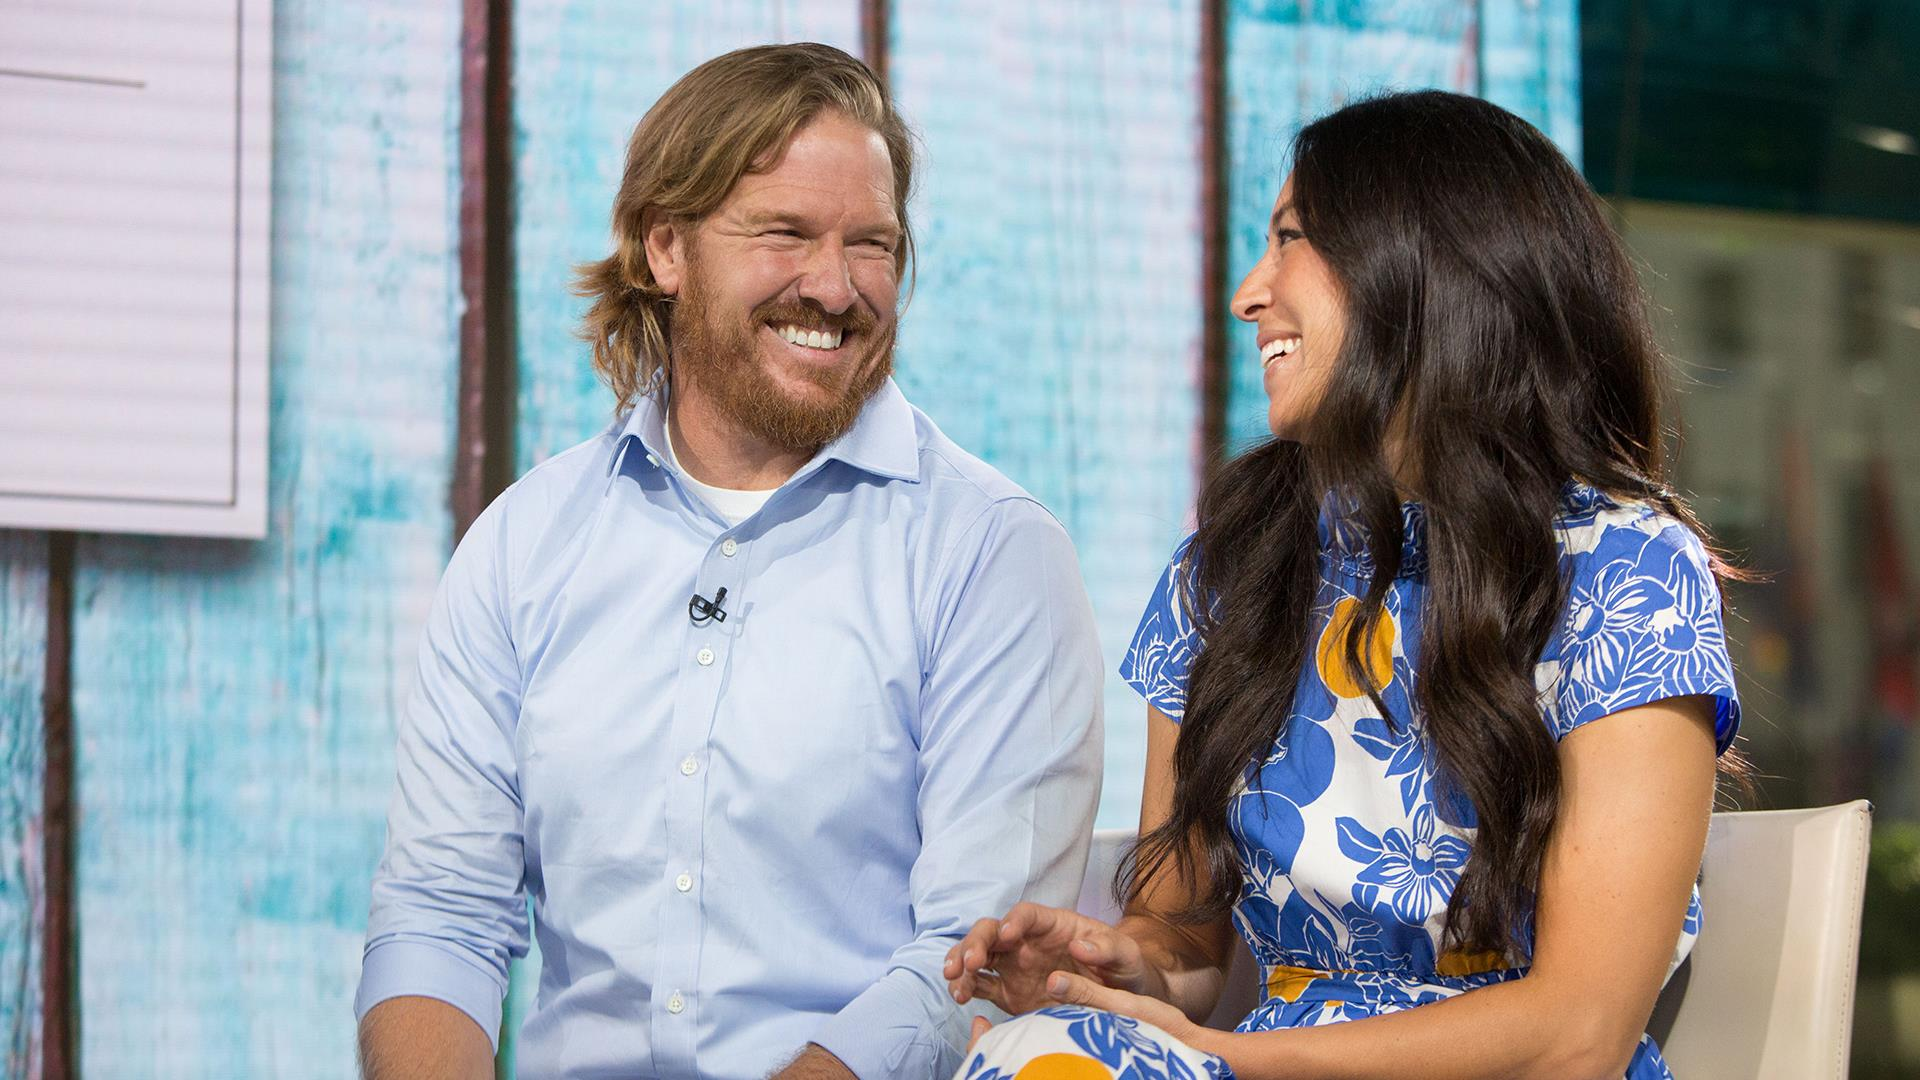 chip and joanna gaines reveal the cover of chip s new book live on today. Black Bedroom Furniture Sets. Home Design Ideas